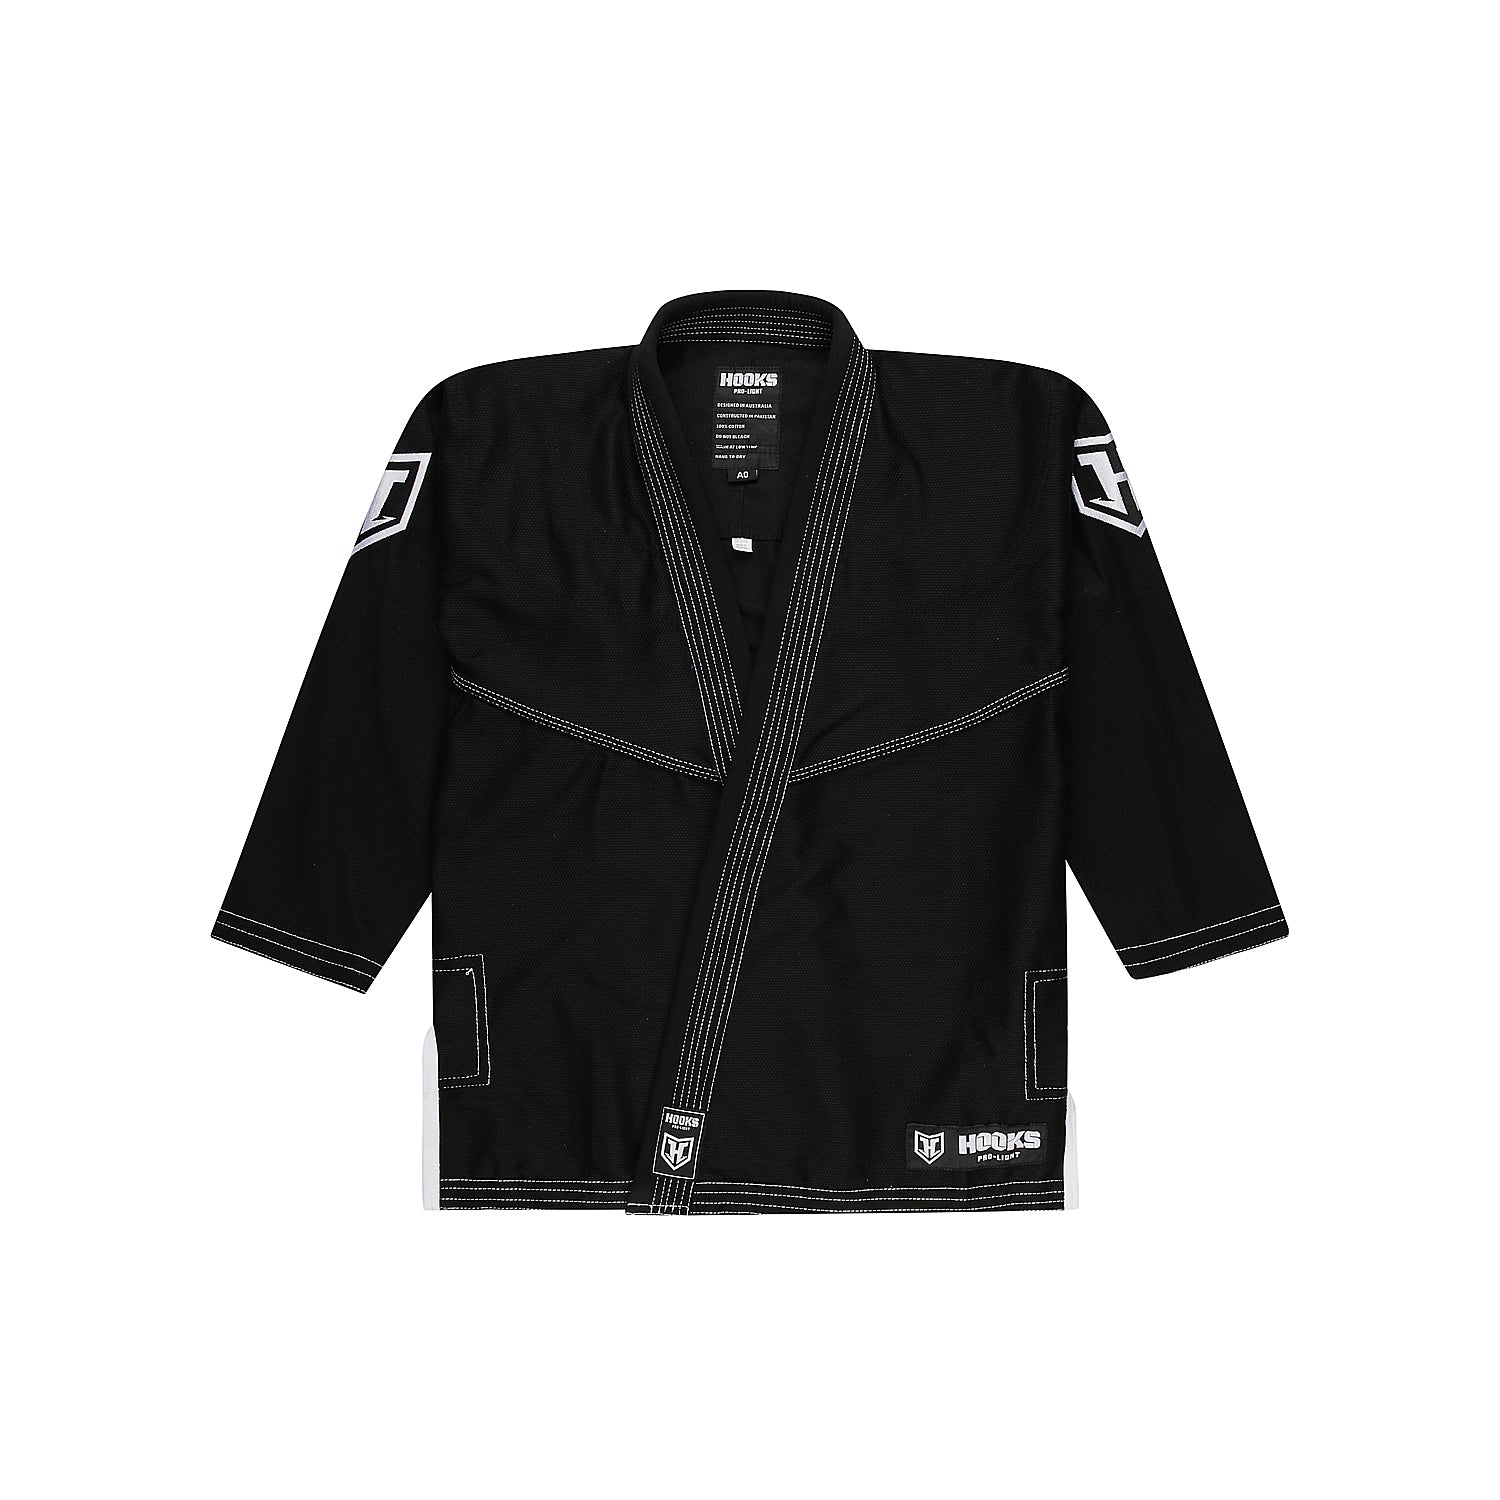 Hooks Pro Light Jiu Jitsu Gi -  Black/White